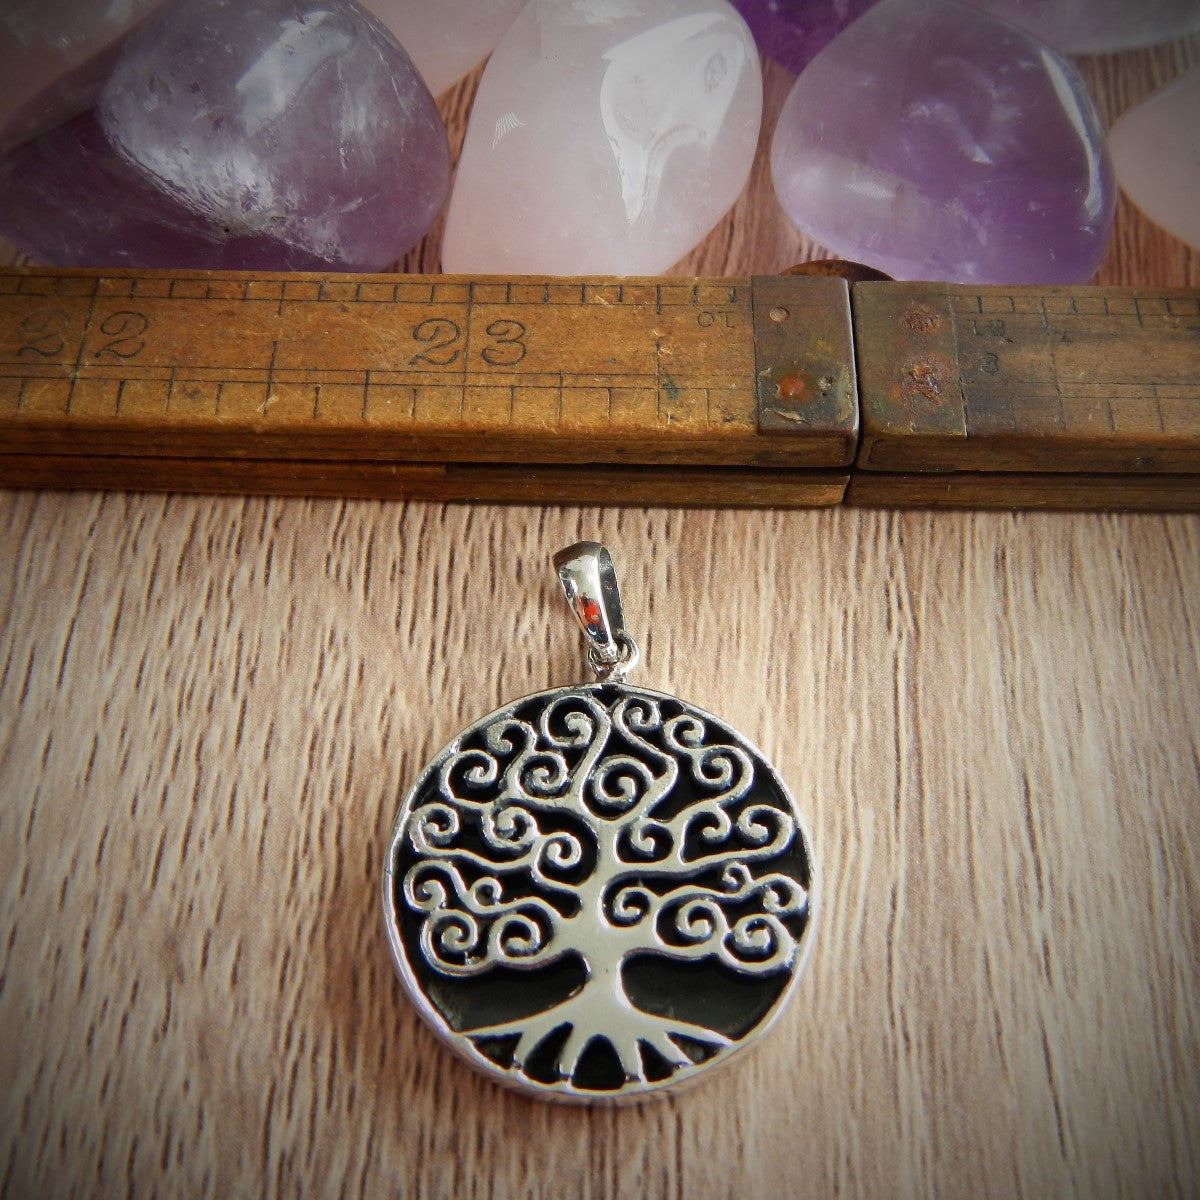 Black Onyx & 925 Sterling Silver Pendant.